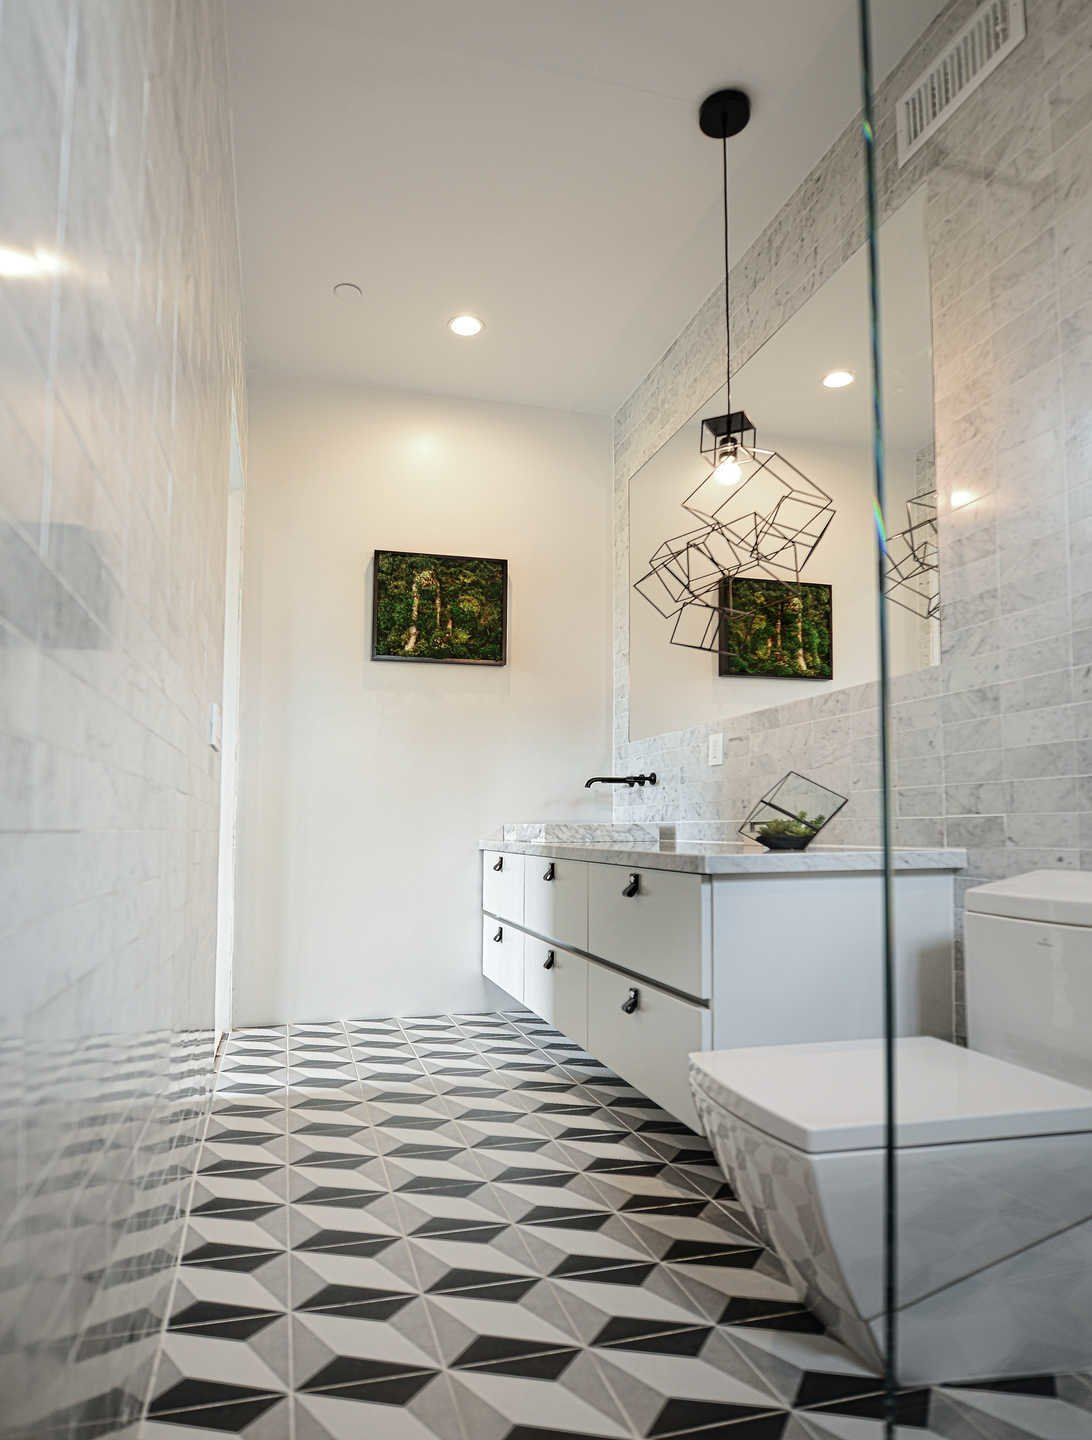 Bath Room, Two Piece Toilet, Pendant Lighting, Stone Tile Wall, Ceramic Tile Floor, and Marble Counter  Italian Modernist Home